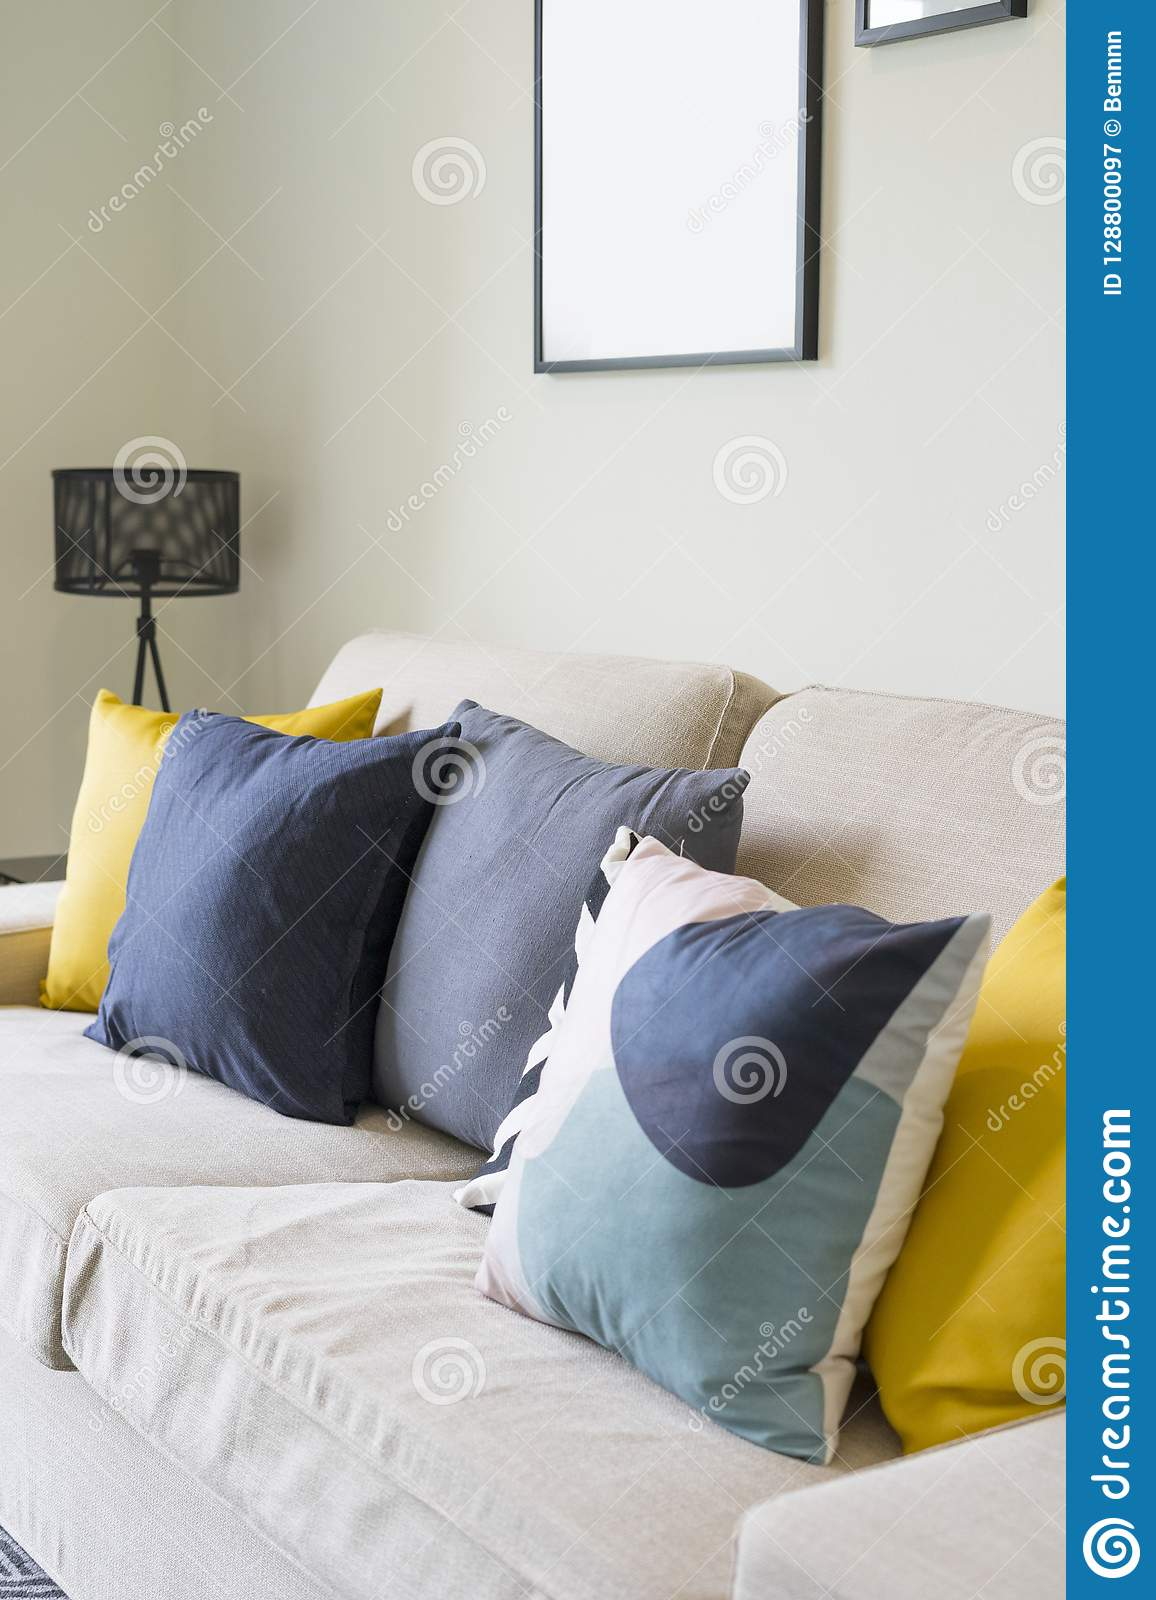 Modern Pattern Blue And Yellow Cushion On Grey Sofa Stock Image